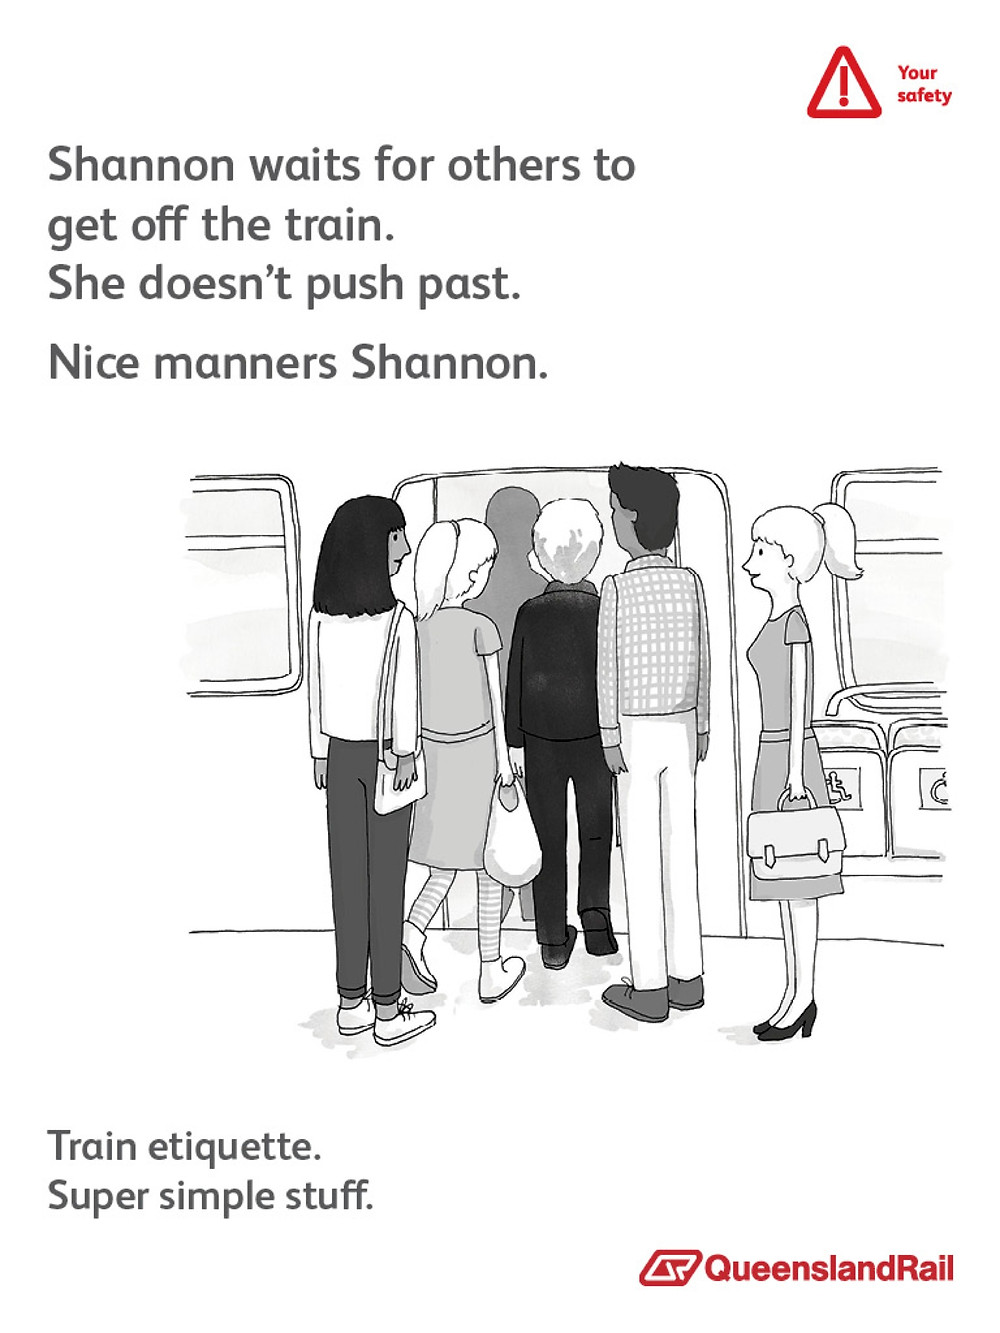 Train etiquette poster, shannon waits for others to exit the train before entering